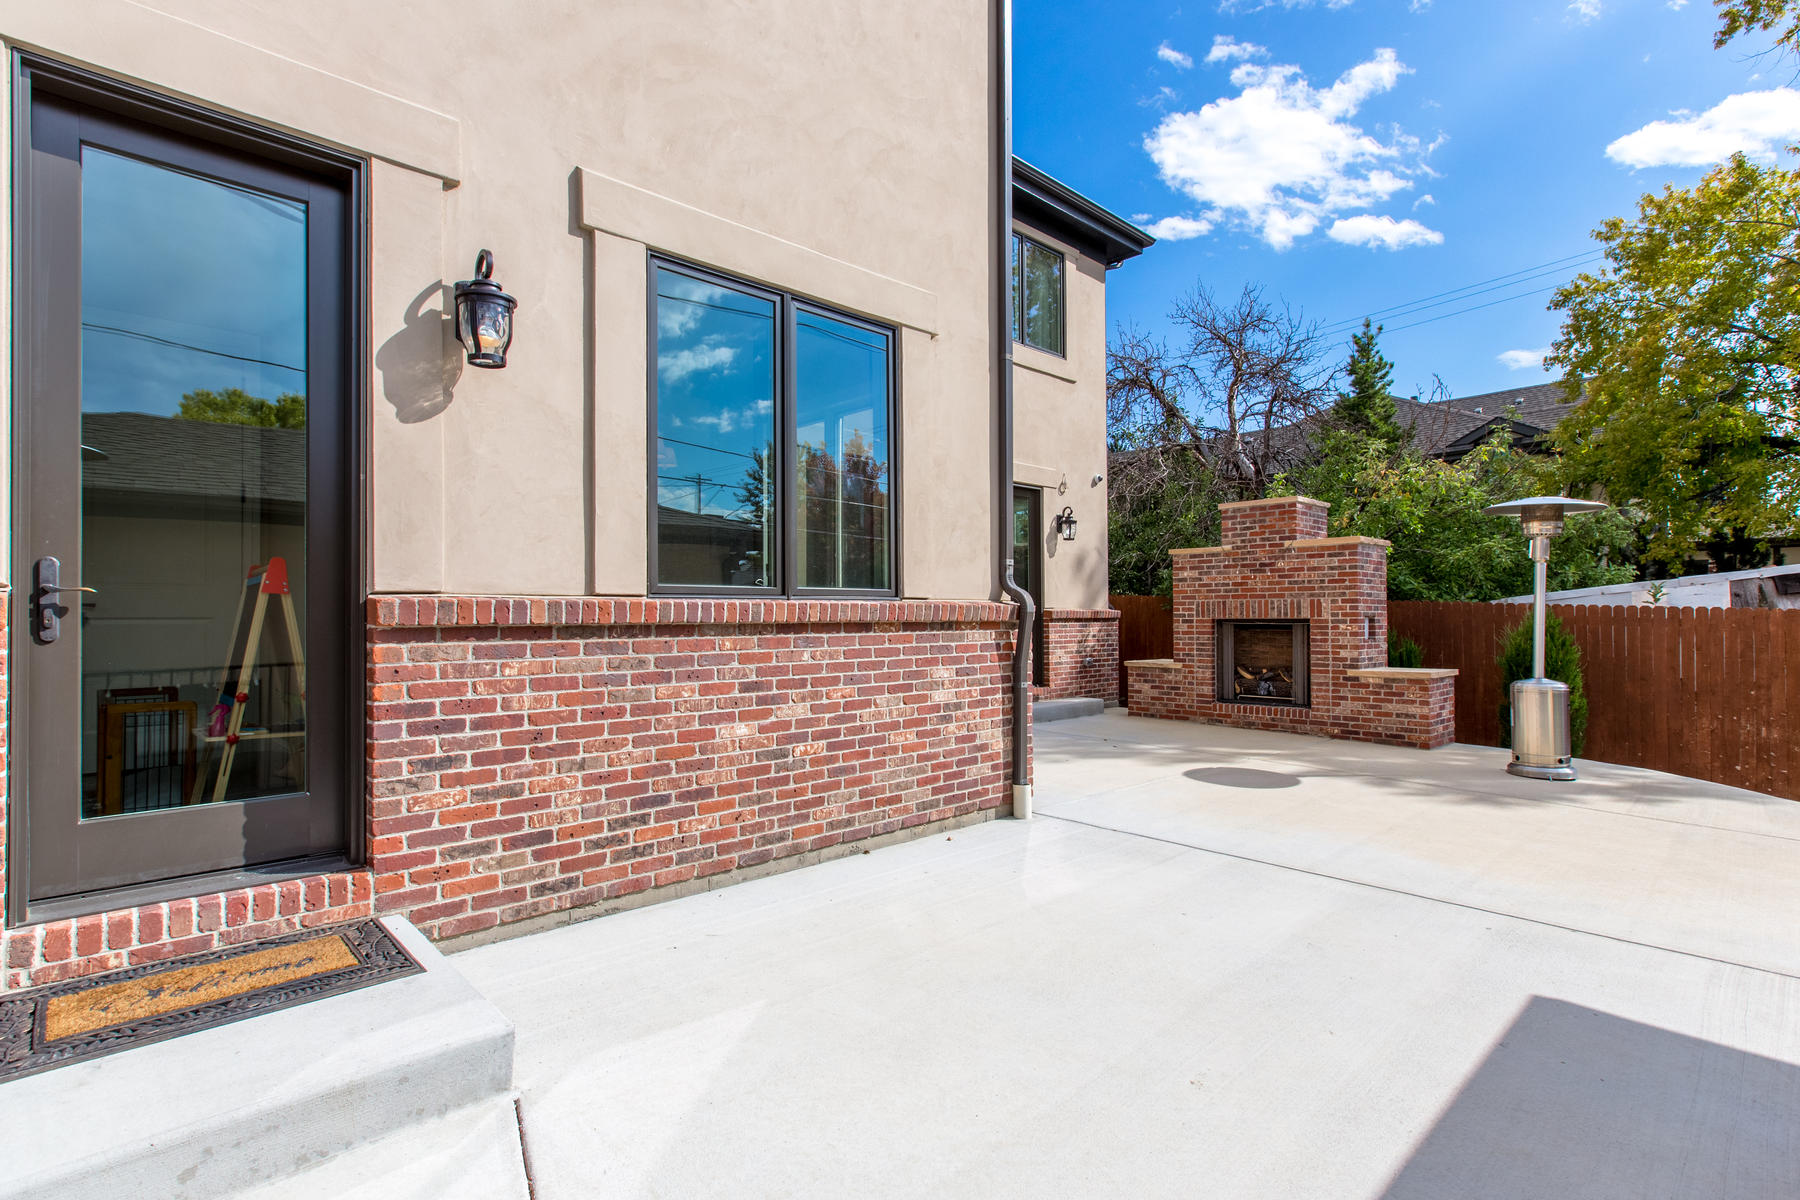 Additional photo for property listing at A True MUST SEE 1475 S Milwaukee St Denver, Colorado 80210 United States